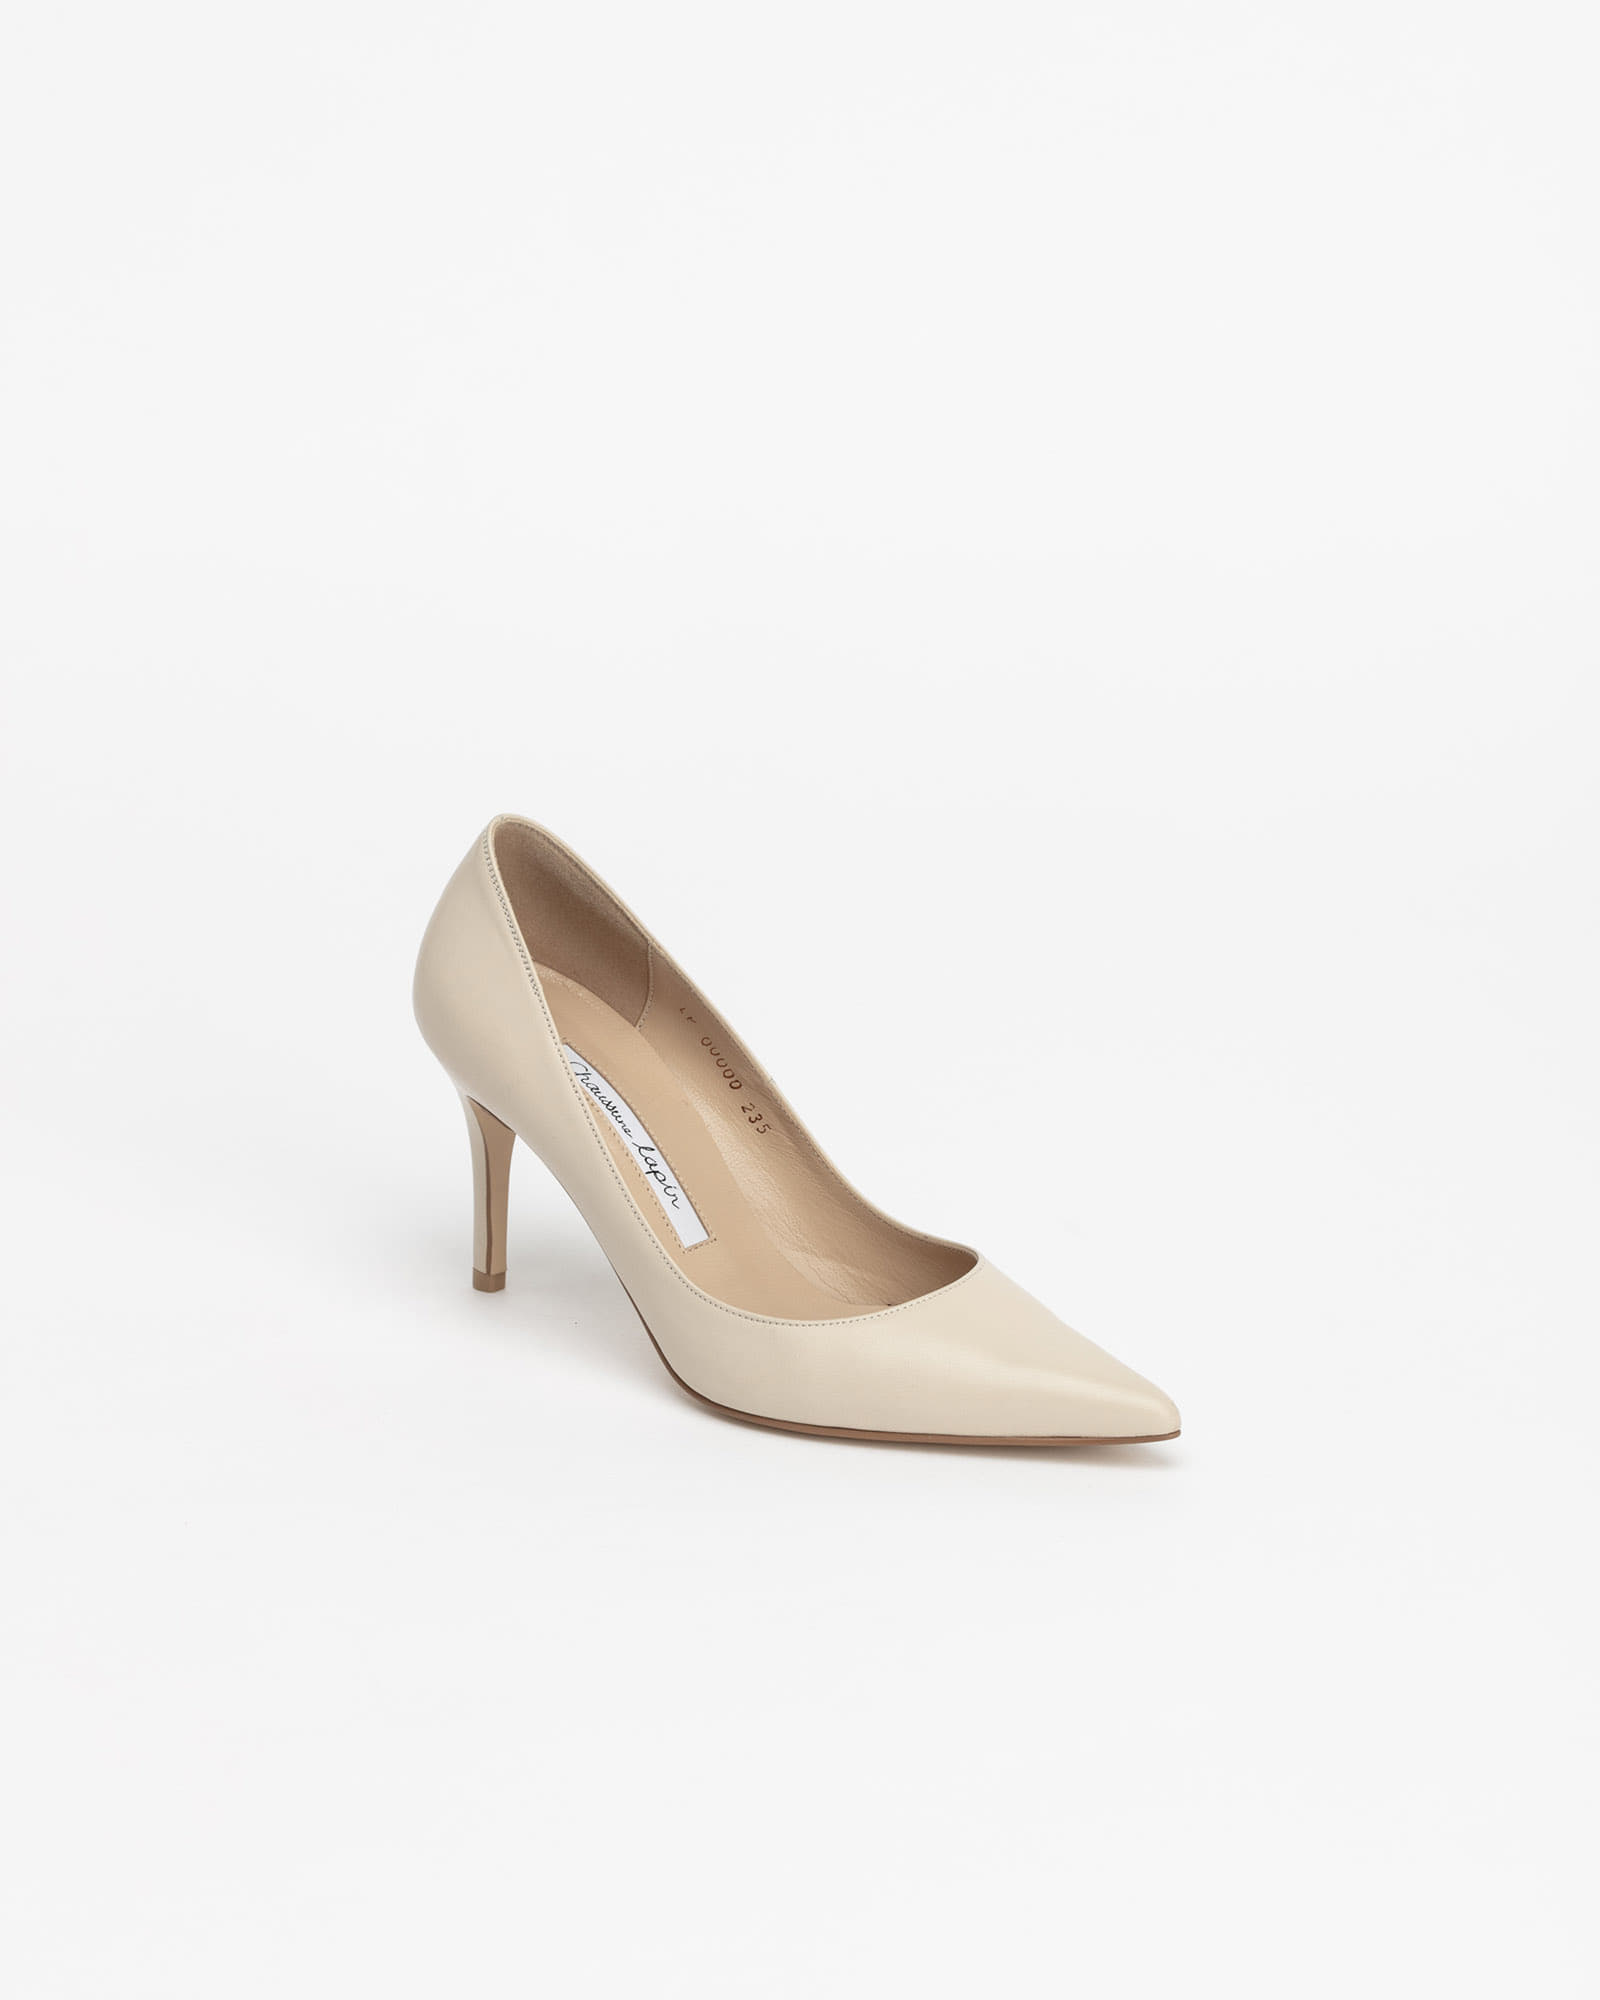 Chauffeur Stiletto Pumps in Ivory